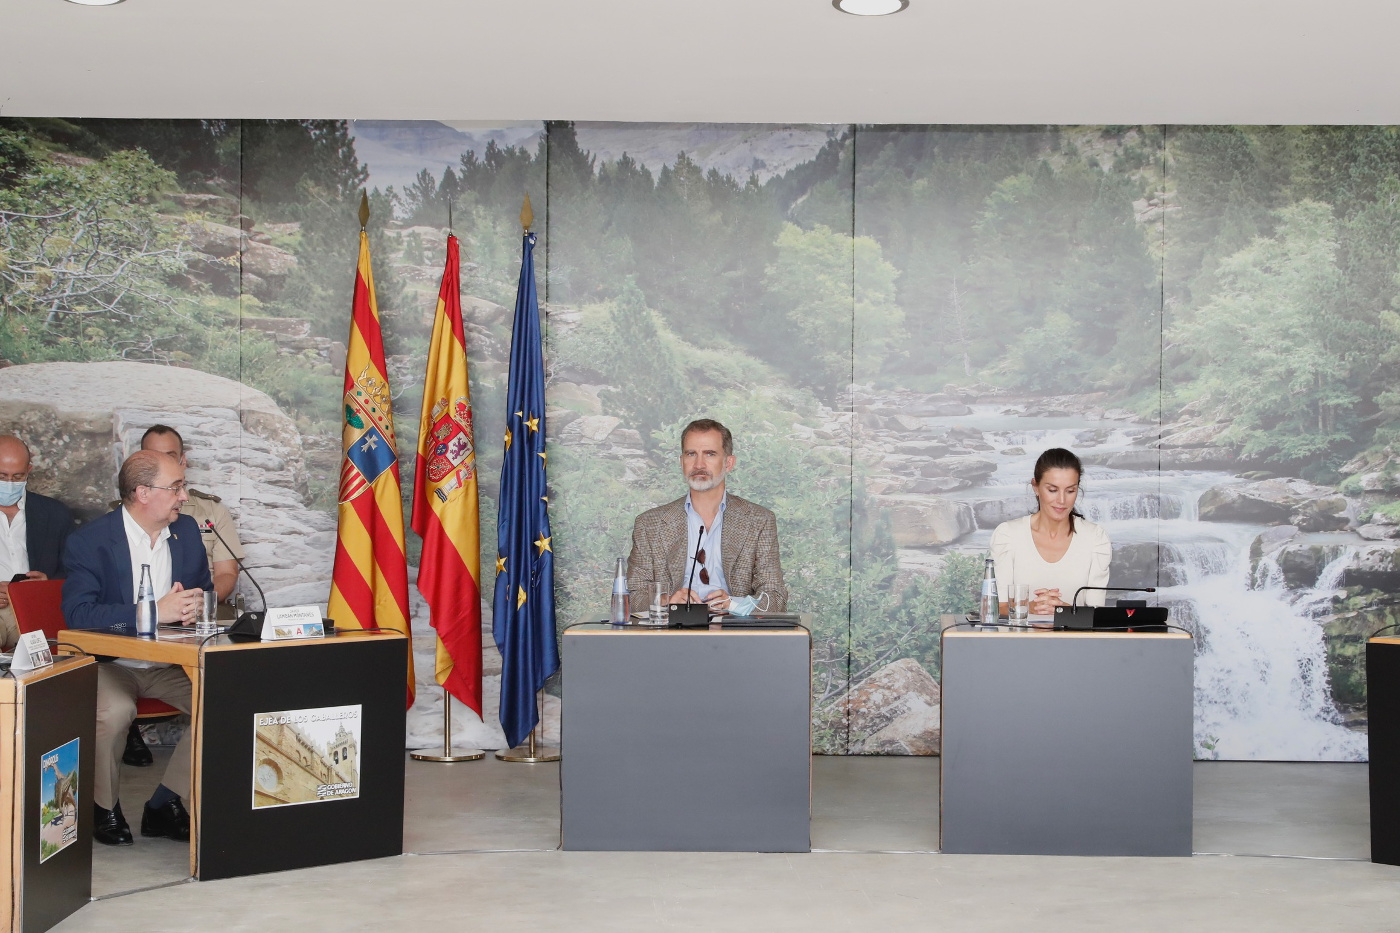 King Felipe and Queen Letizia held a meeting with the tourism sector of Aragon in Huesca